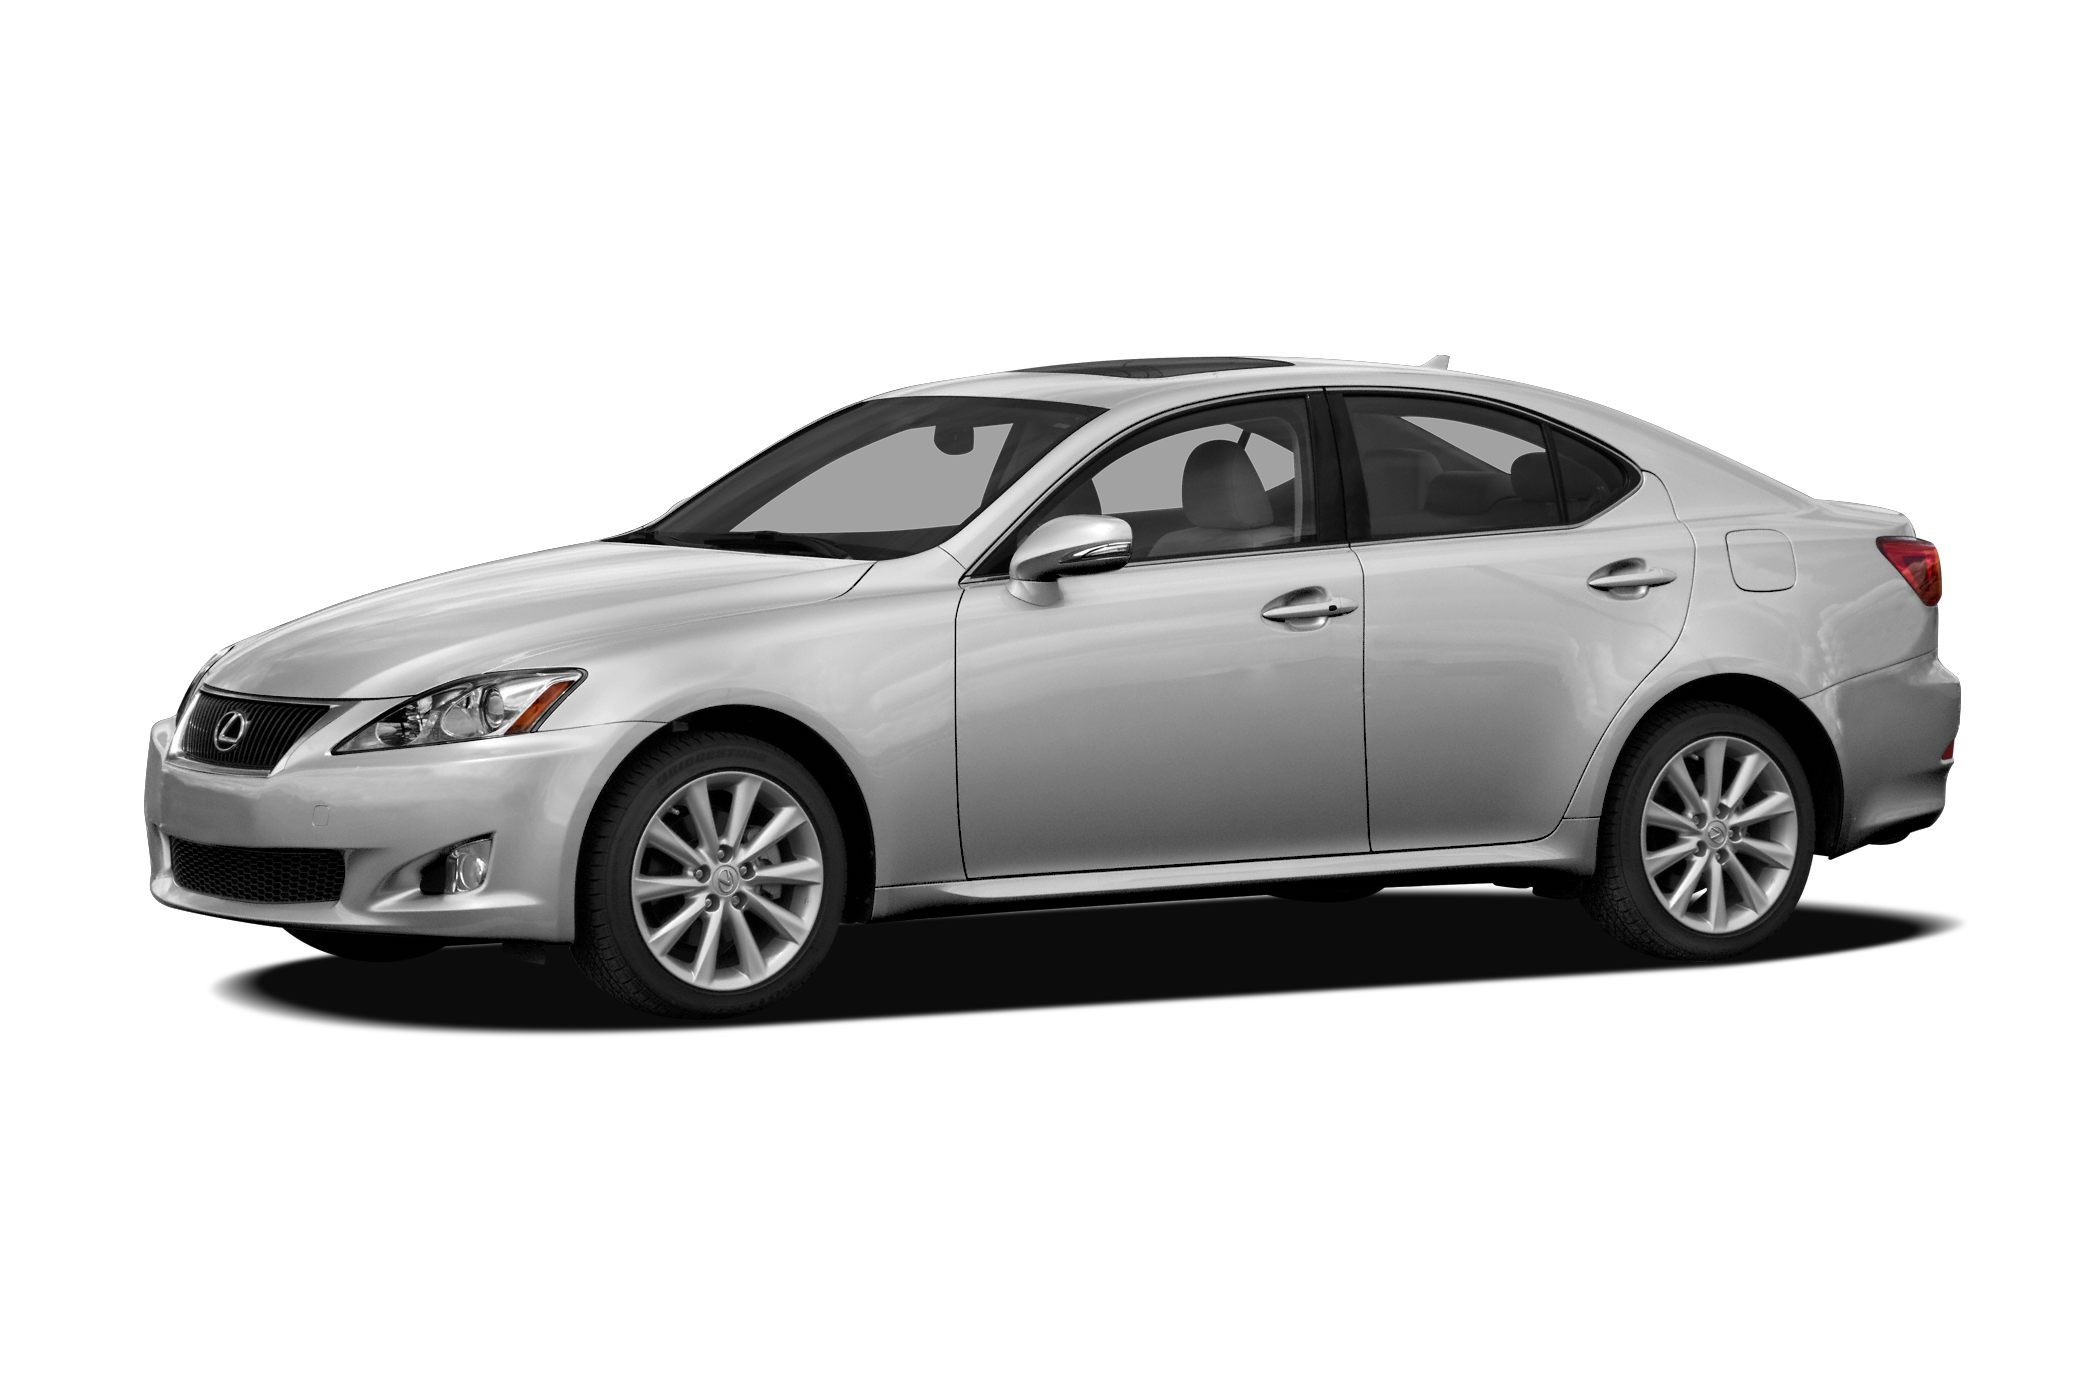 2010 Lexus IS 250 Base  COME SEE THE DIFFERENCE AT TAJ AUTO MALL WE SELL OUR VEHICLES AT